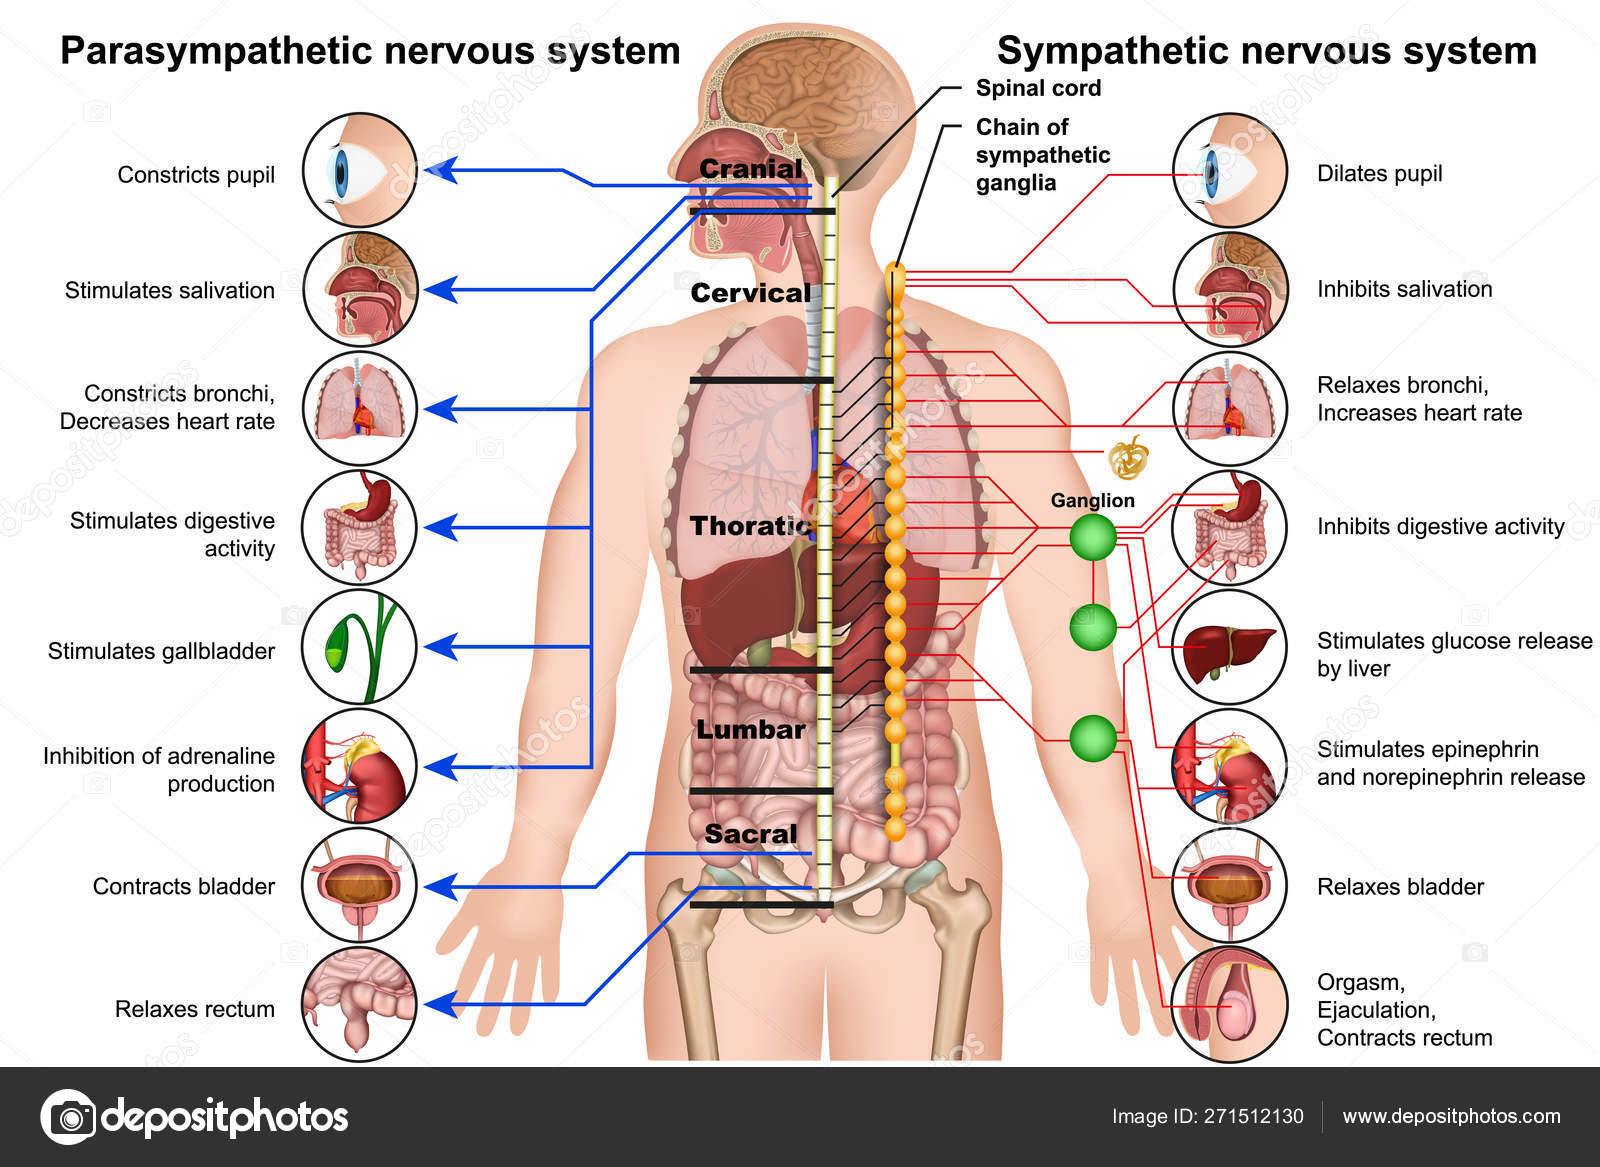 Image result for parasympathetic nervous system